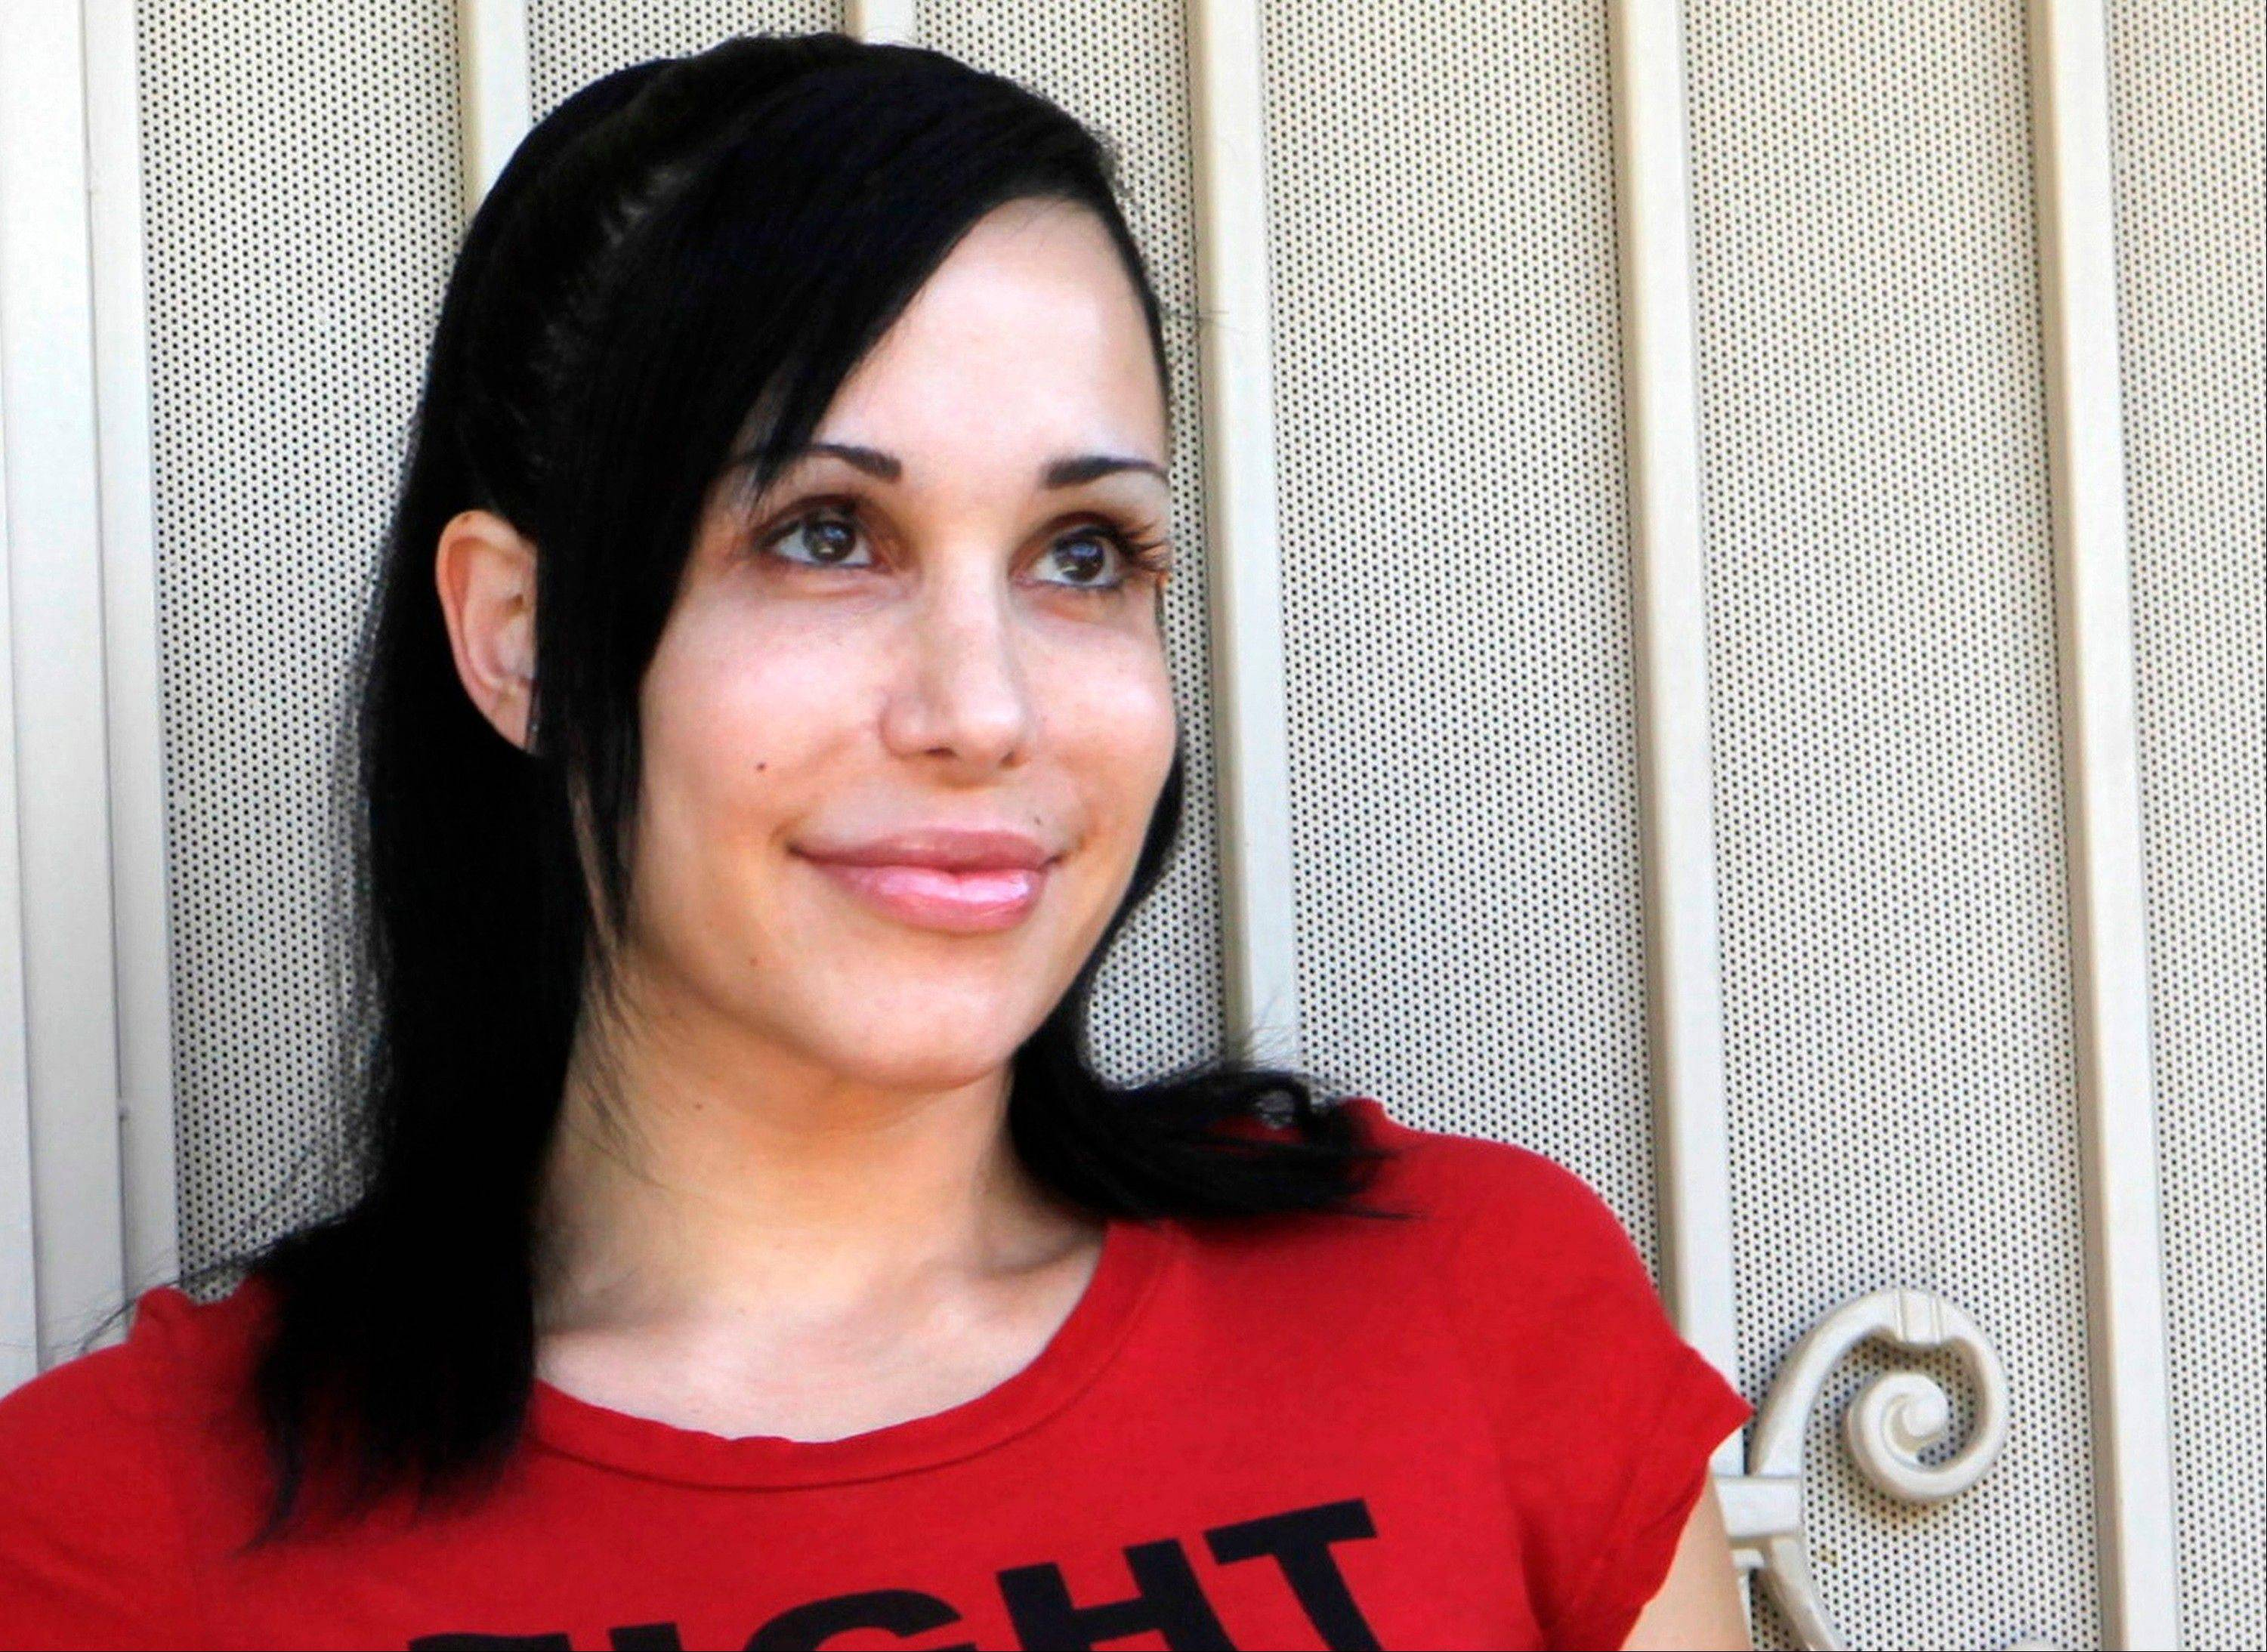 Nadya Suleman, better known as �Octomom,� stands outside her home in La Habra, Calif.